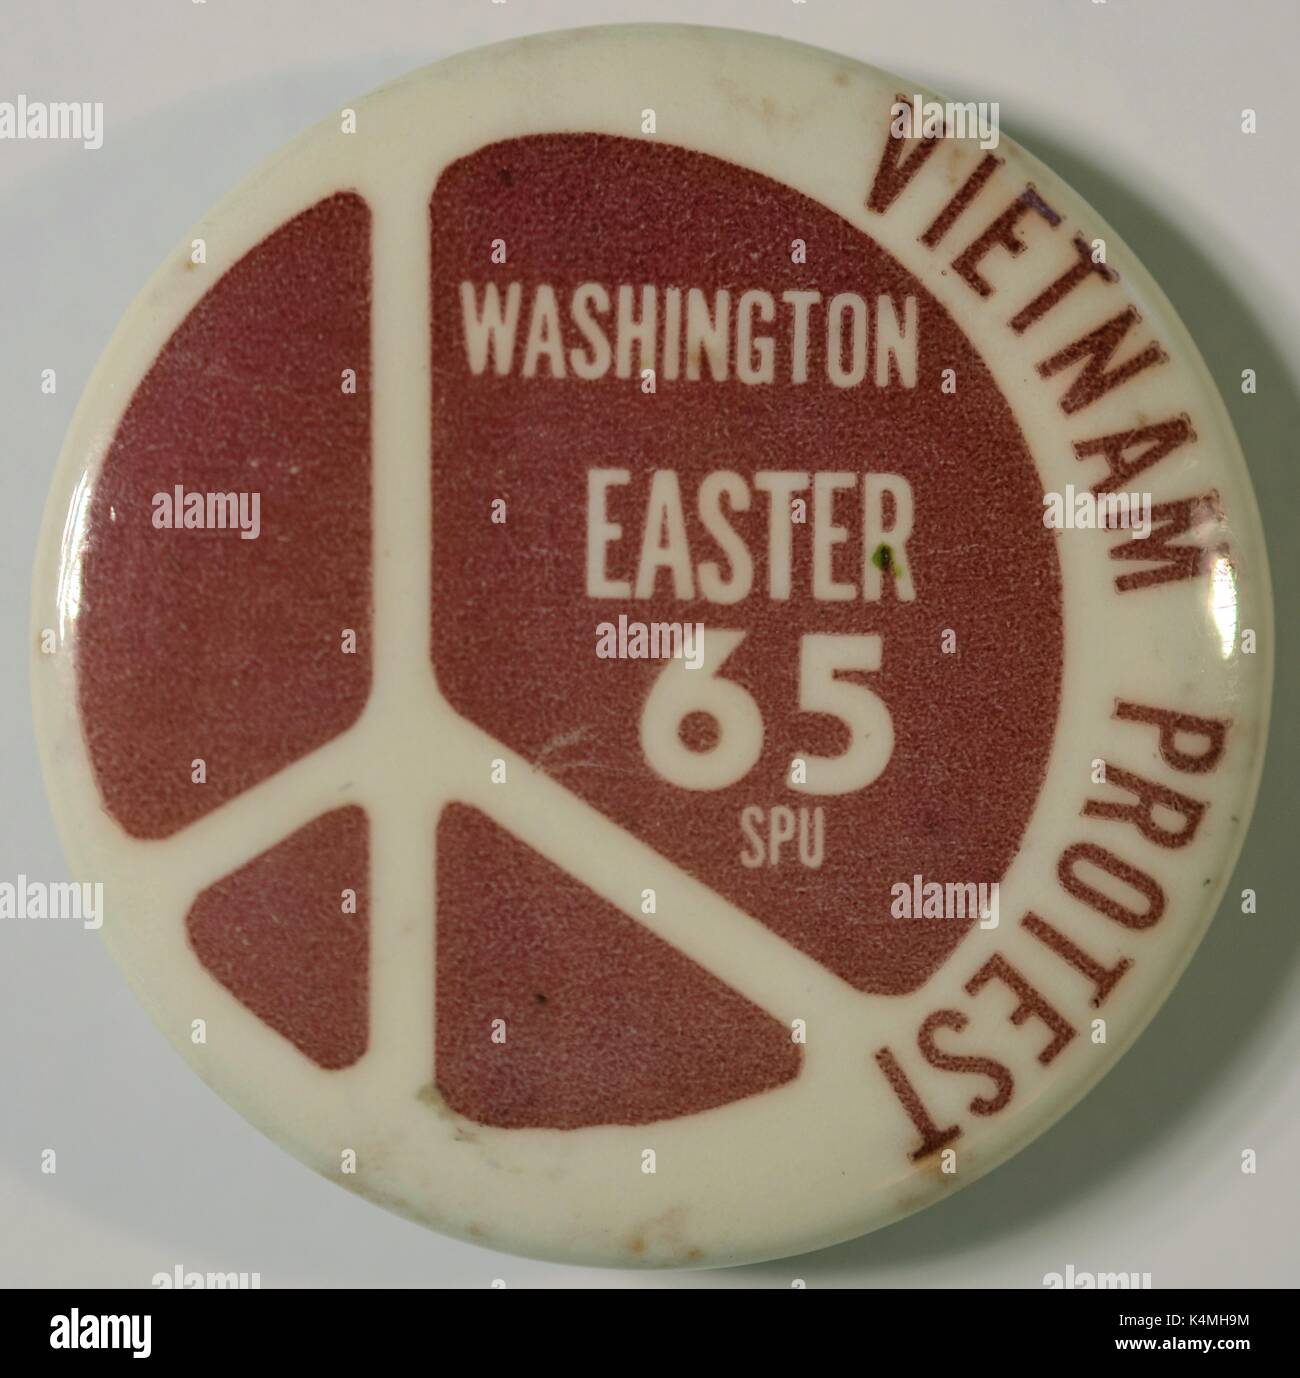 Pinback button with a peace symbol for an Easter protest, March on Washington, to call for an end to the Vietnam War, June 30, 2017. - Stock Image